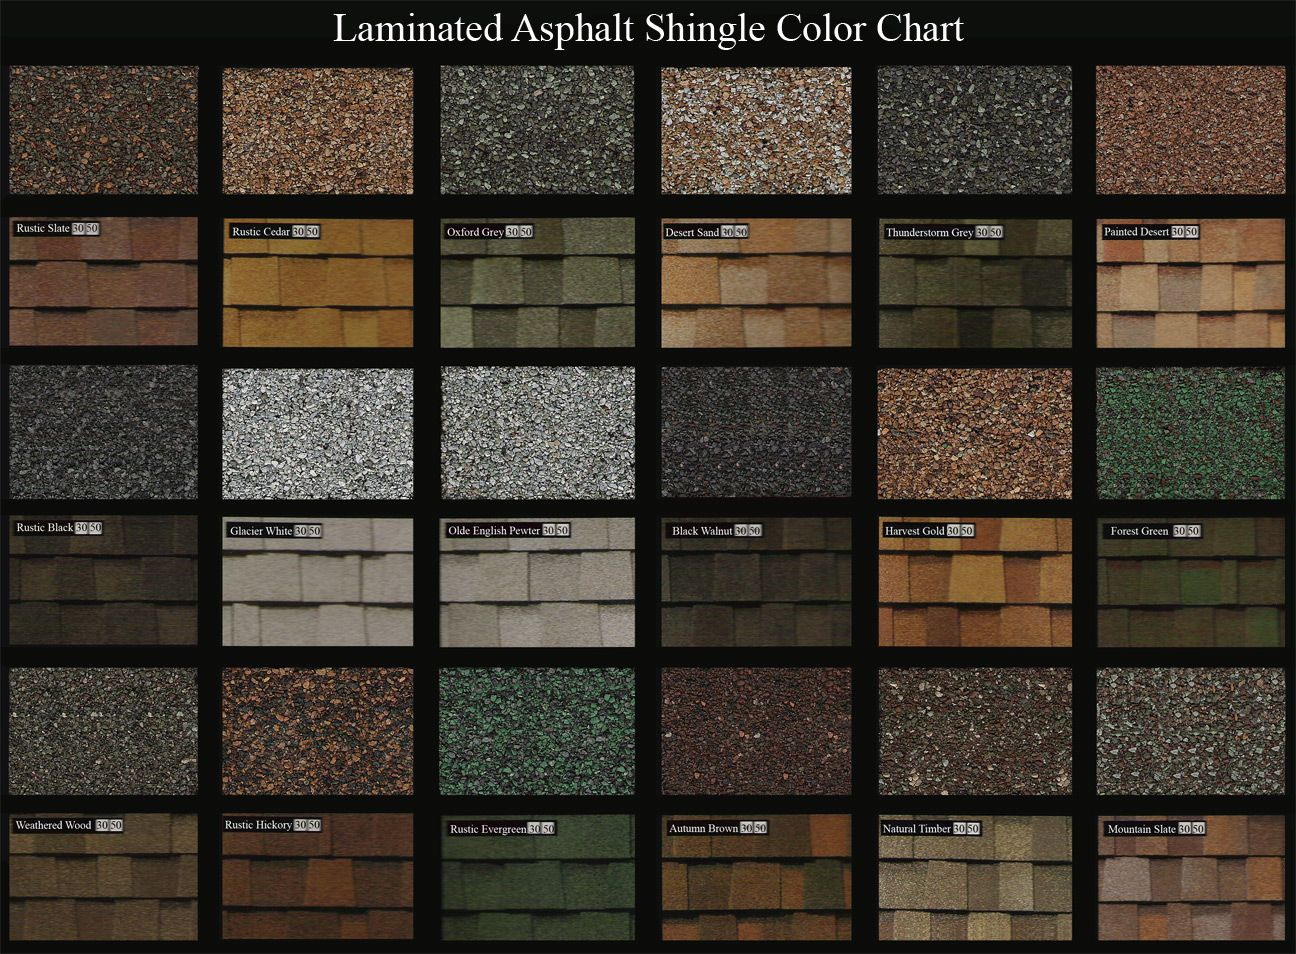 Roofing Shingles Color Premium Roofing Shingle Shingle